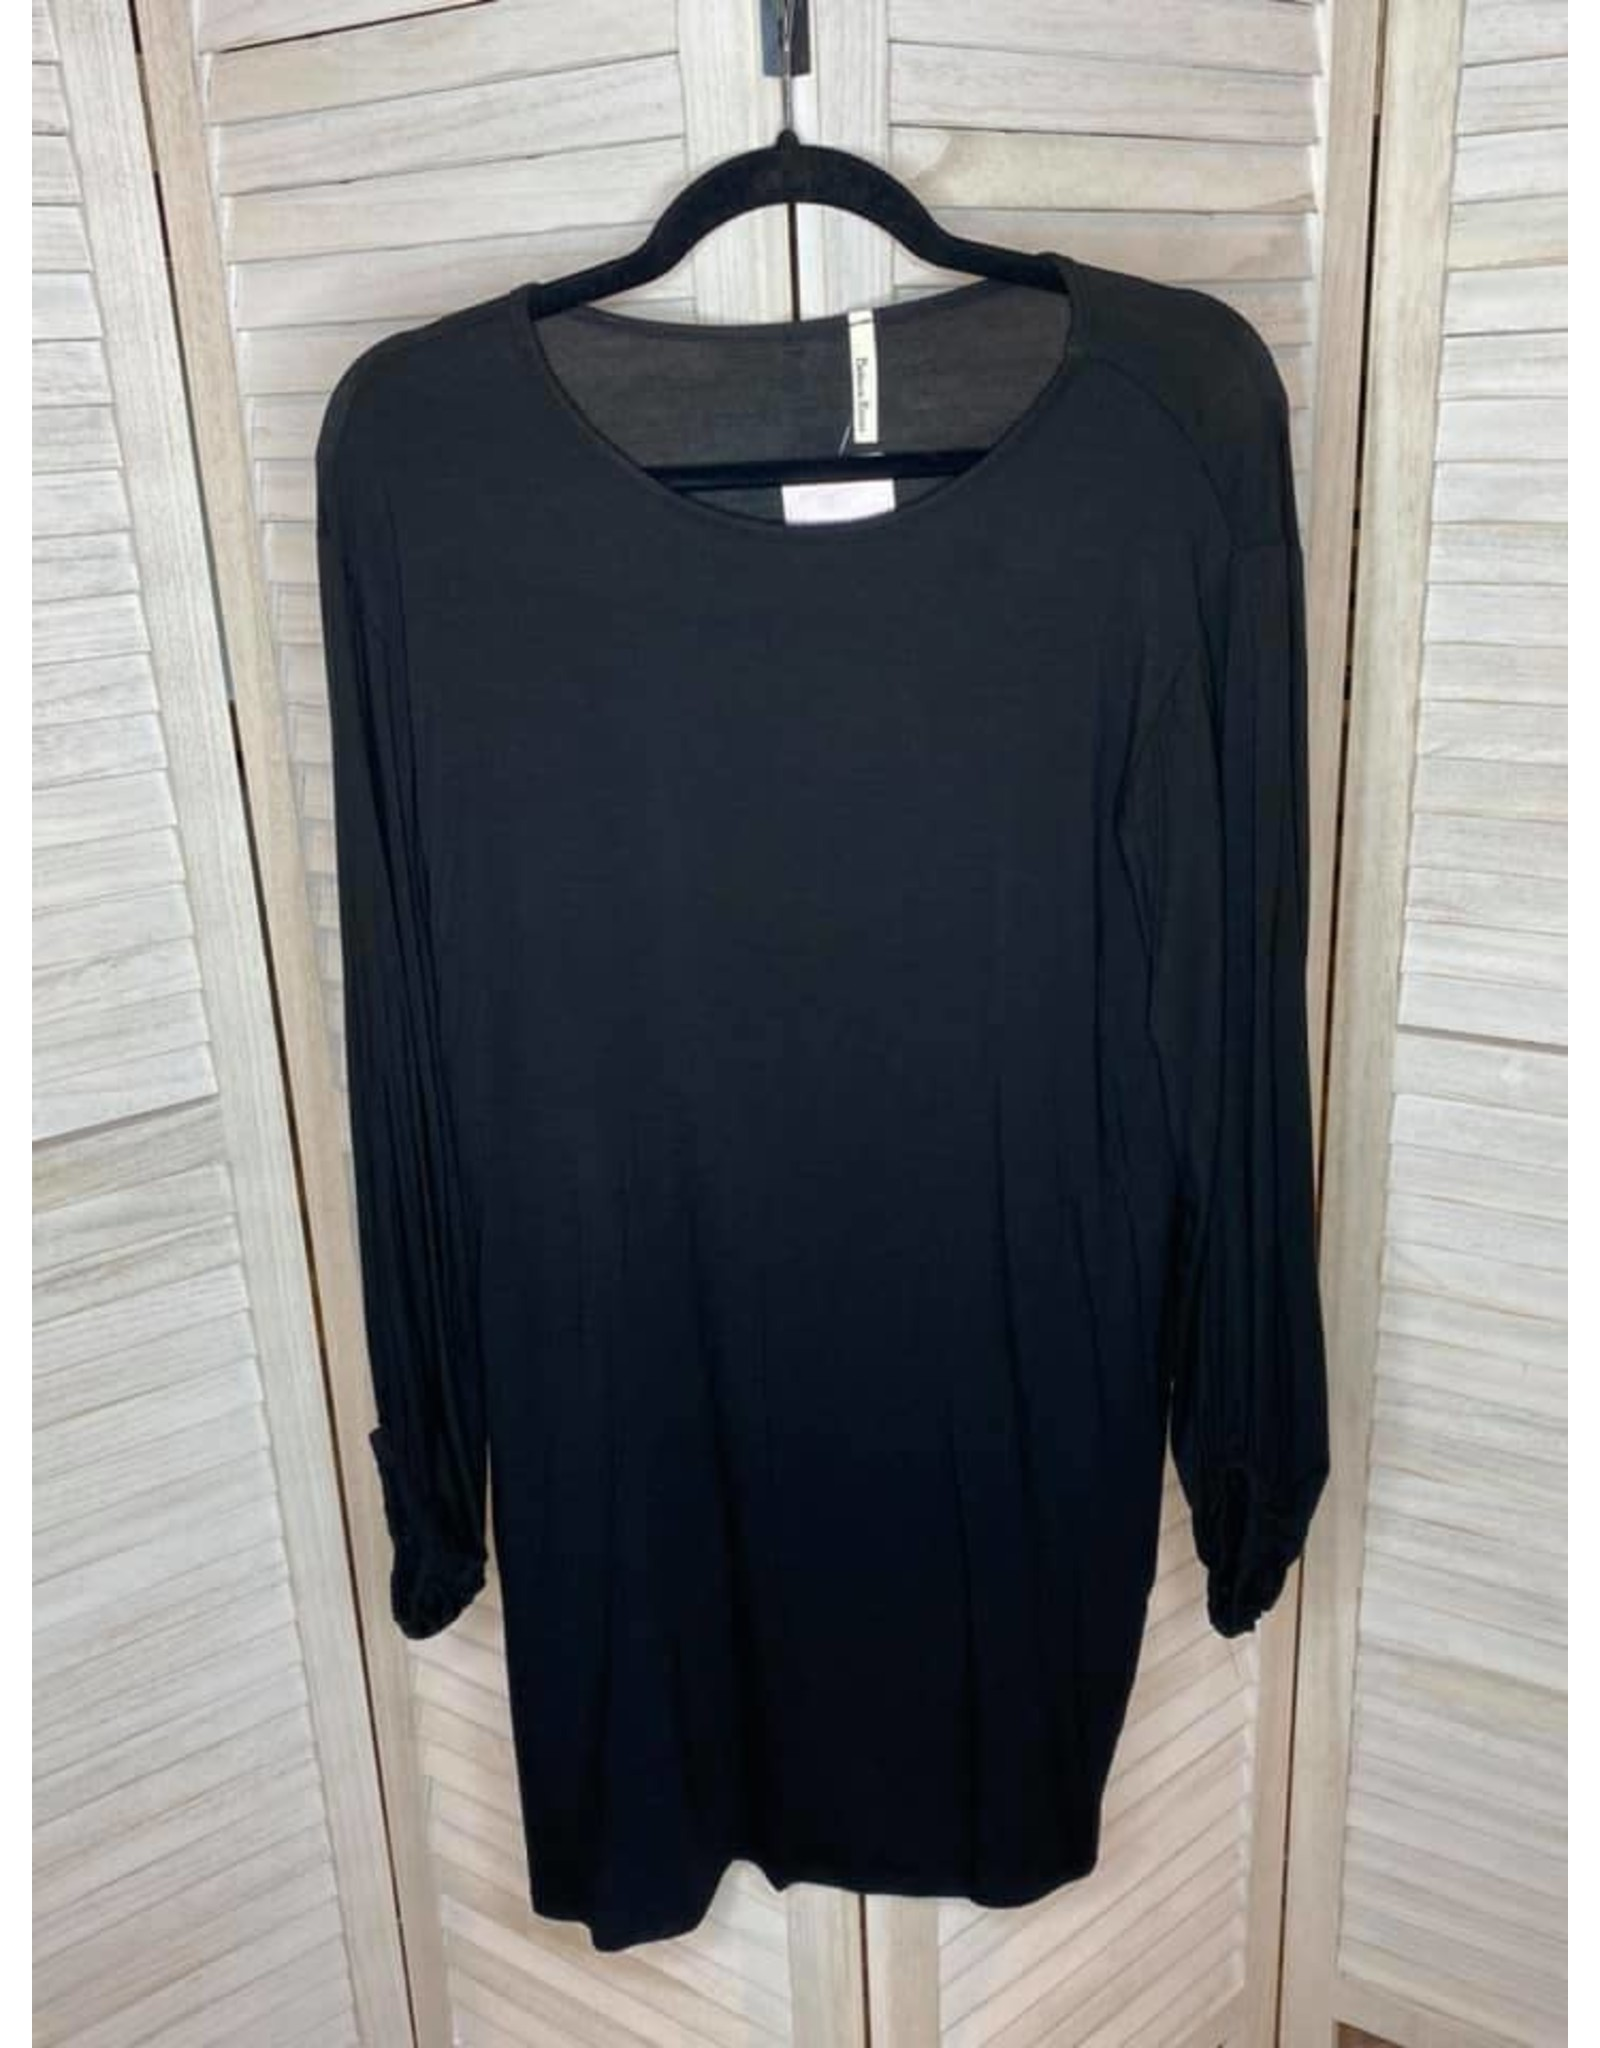 Beeson River Black Shift Dress With Pockets and Bishop Sleeves